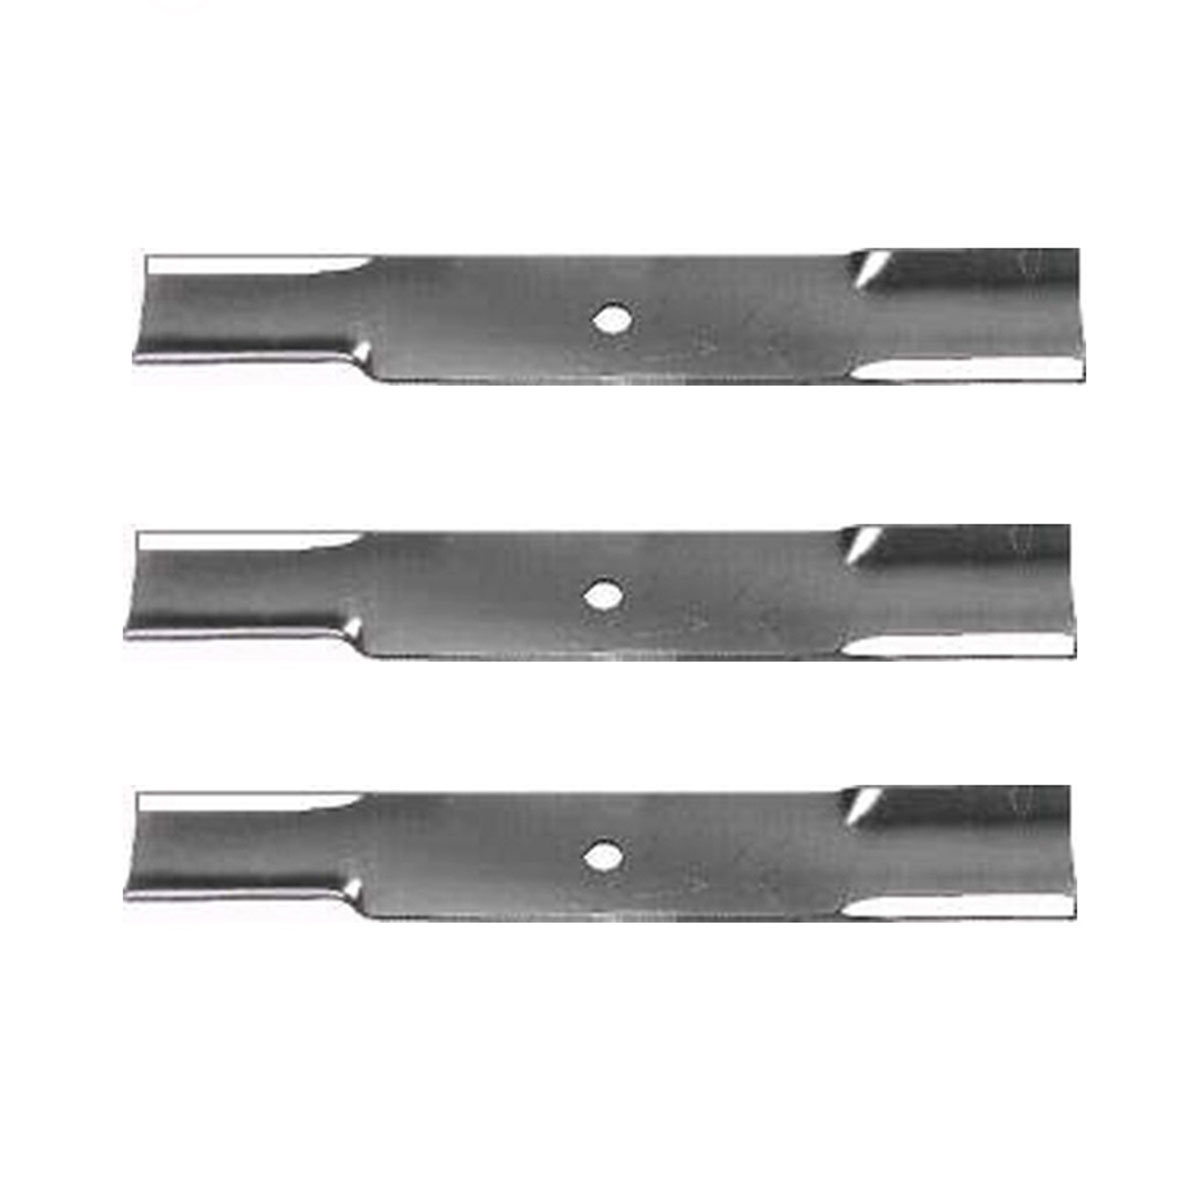 Blade Set Of 3 5021227S